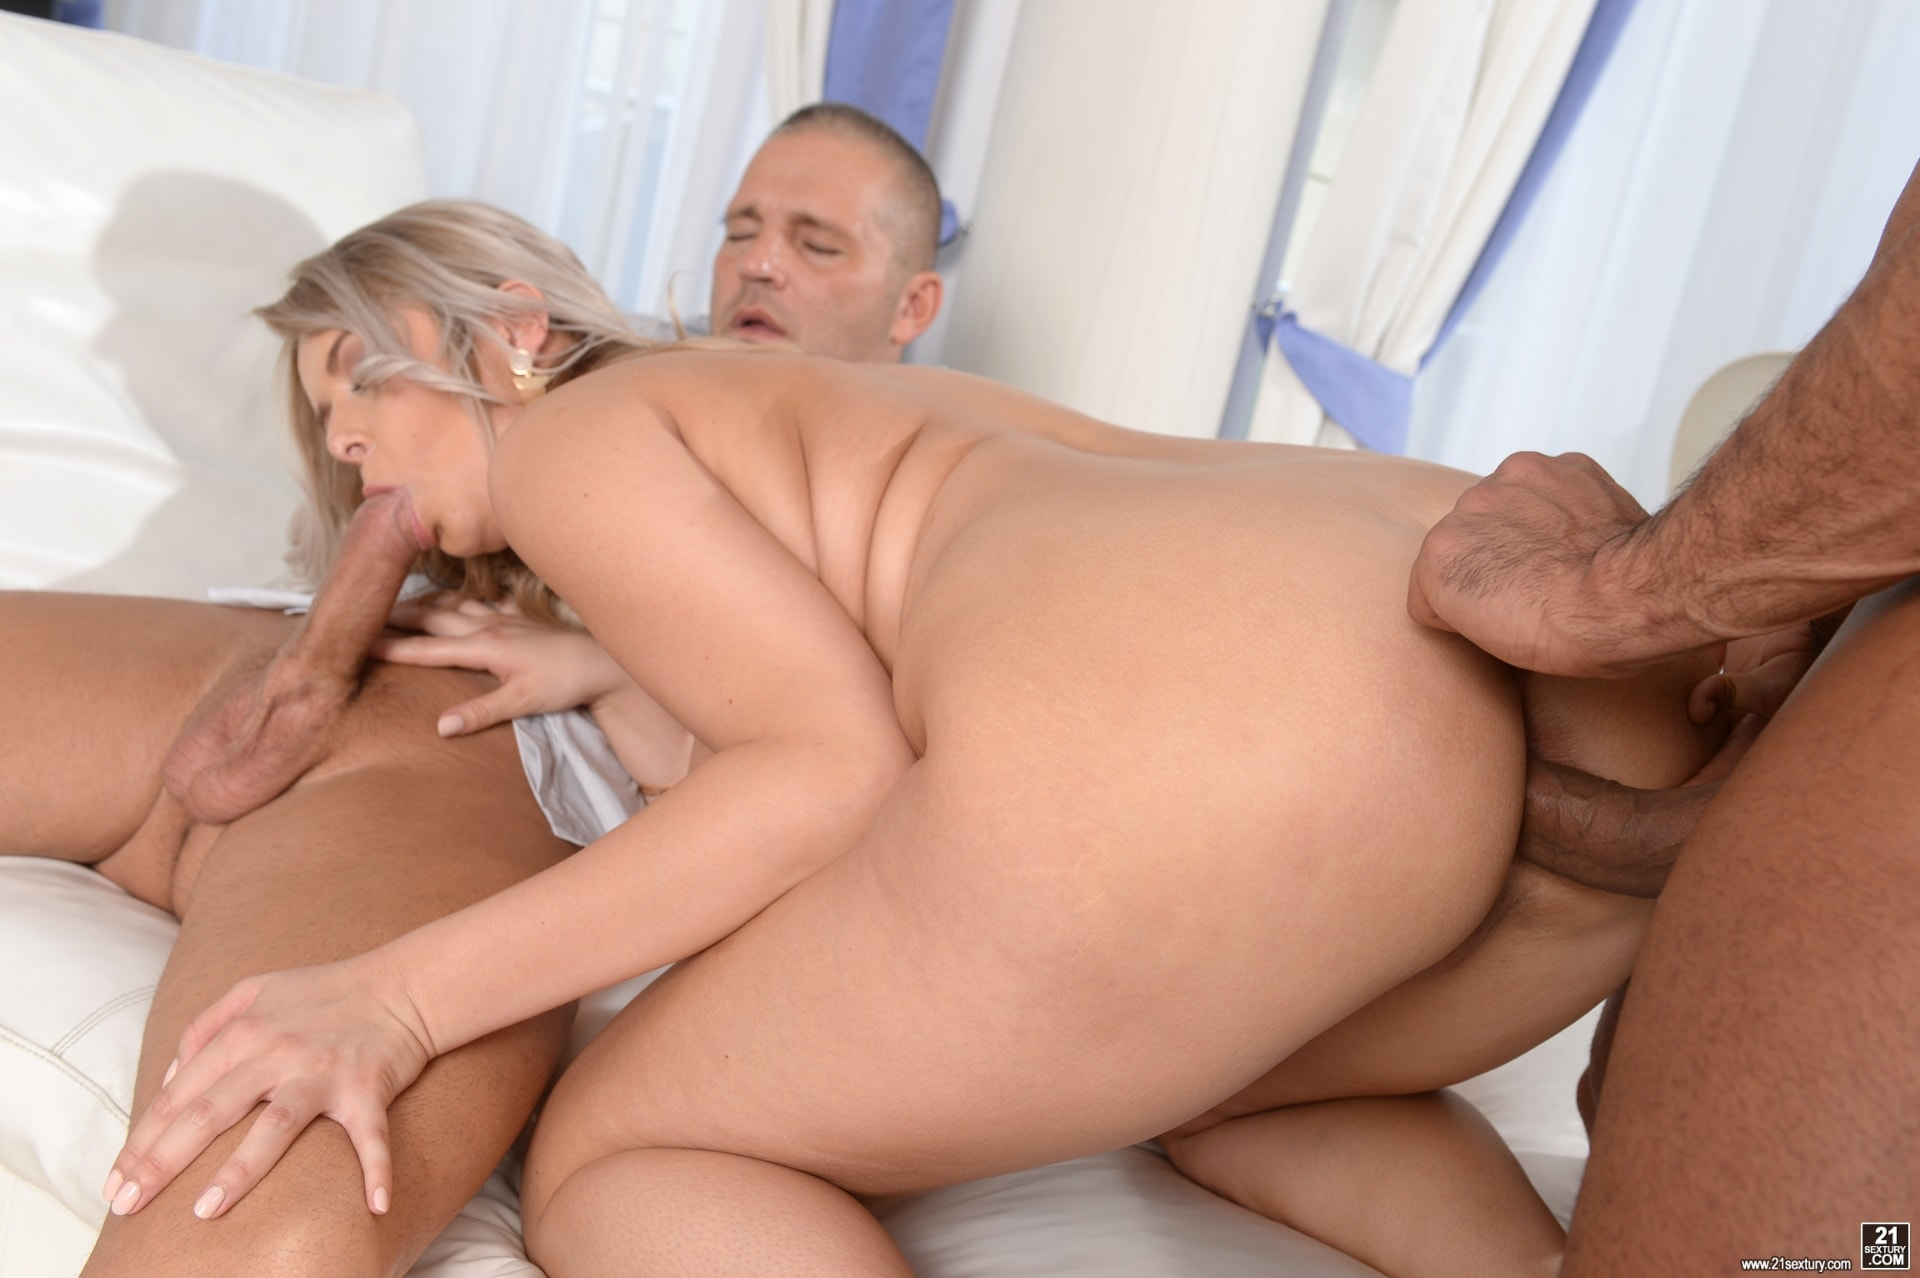 21Sextury 'Taking My Husband and Partner At Once' starring Nikki Dream (Photo 126)